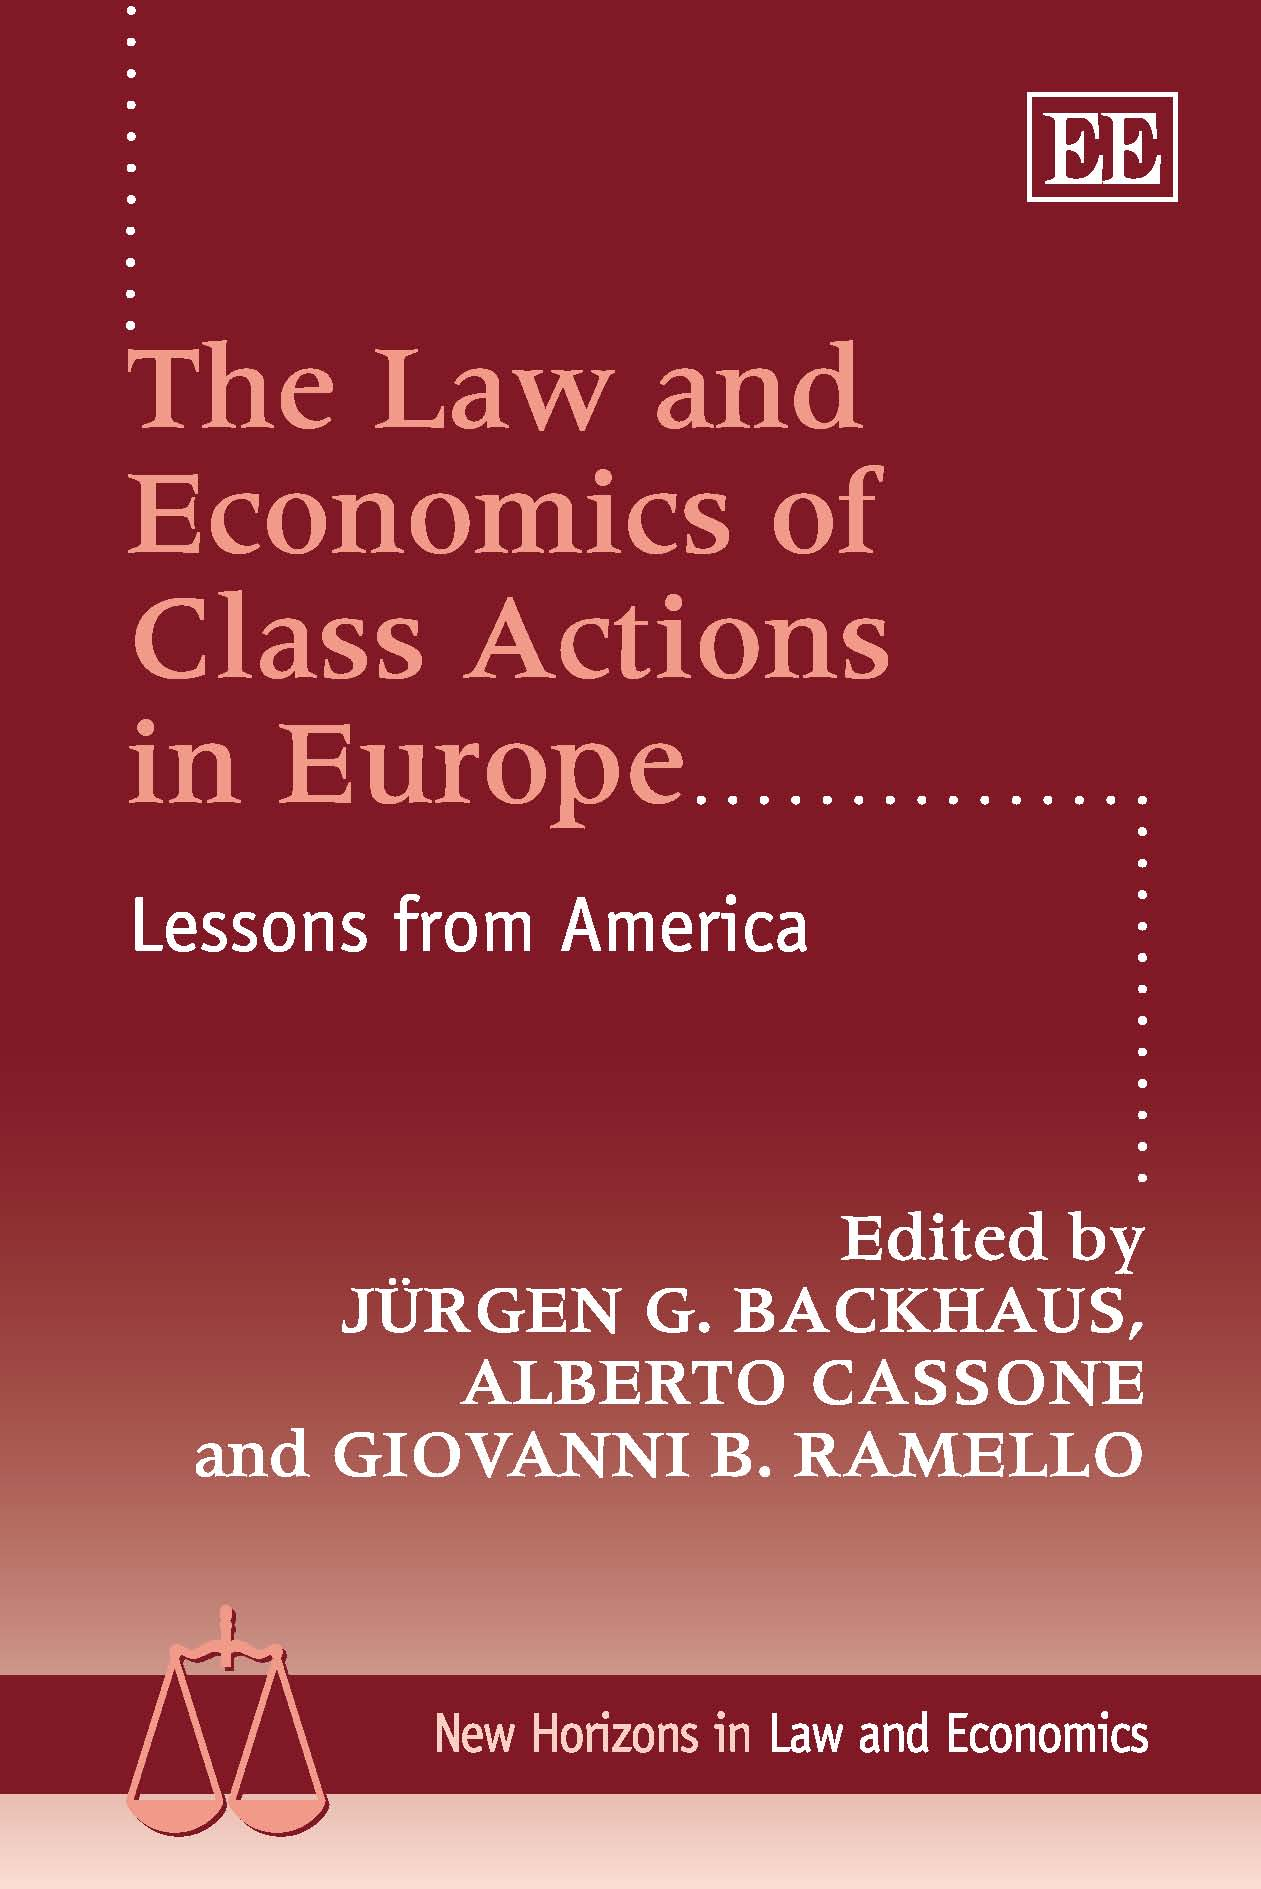 The Law and Economics of Class Actions in Europe